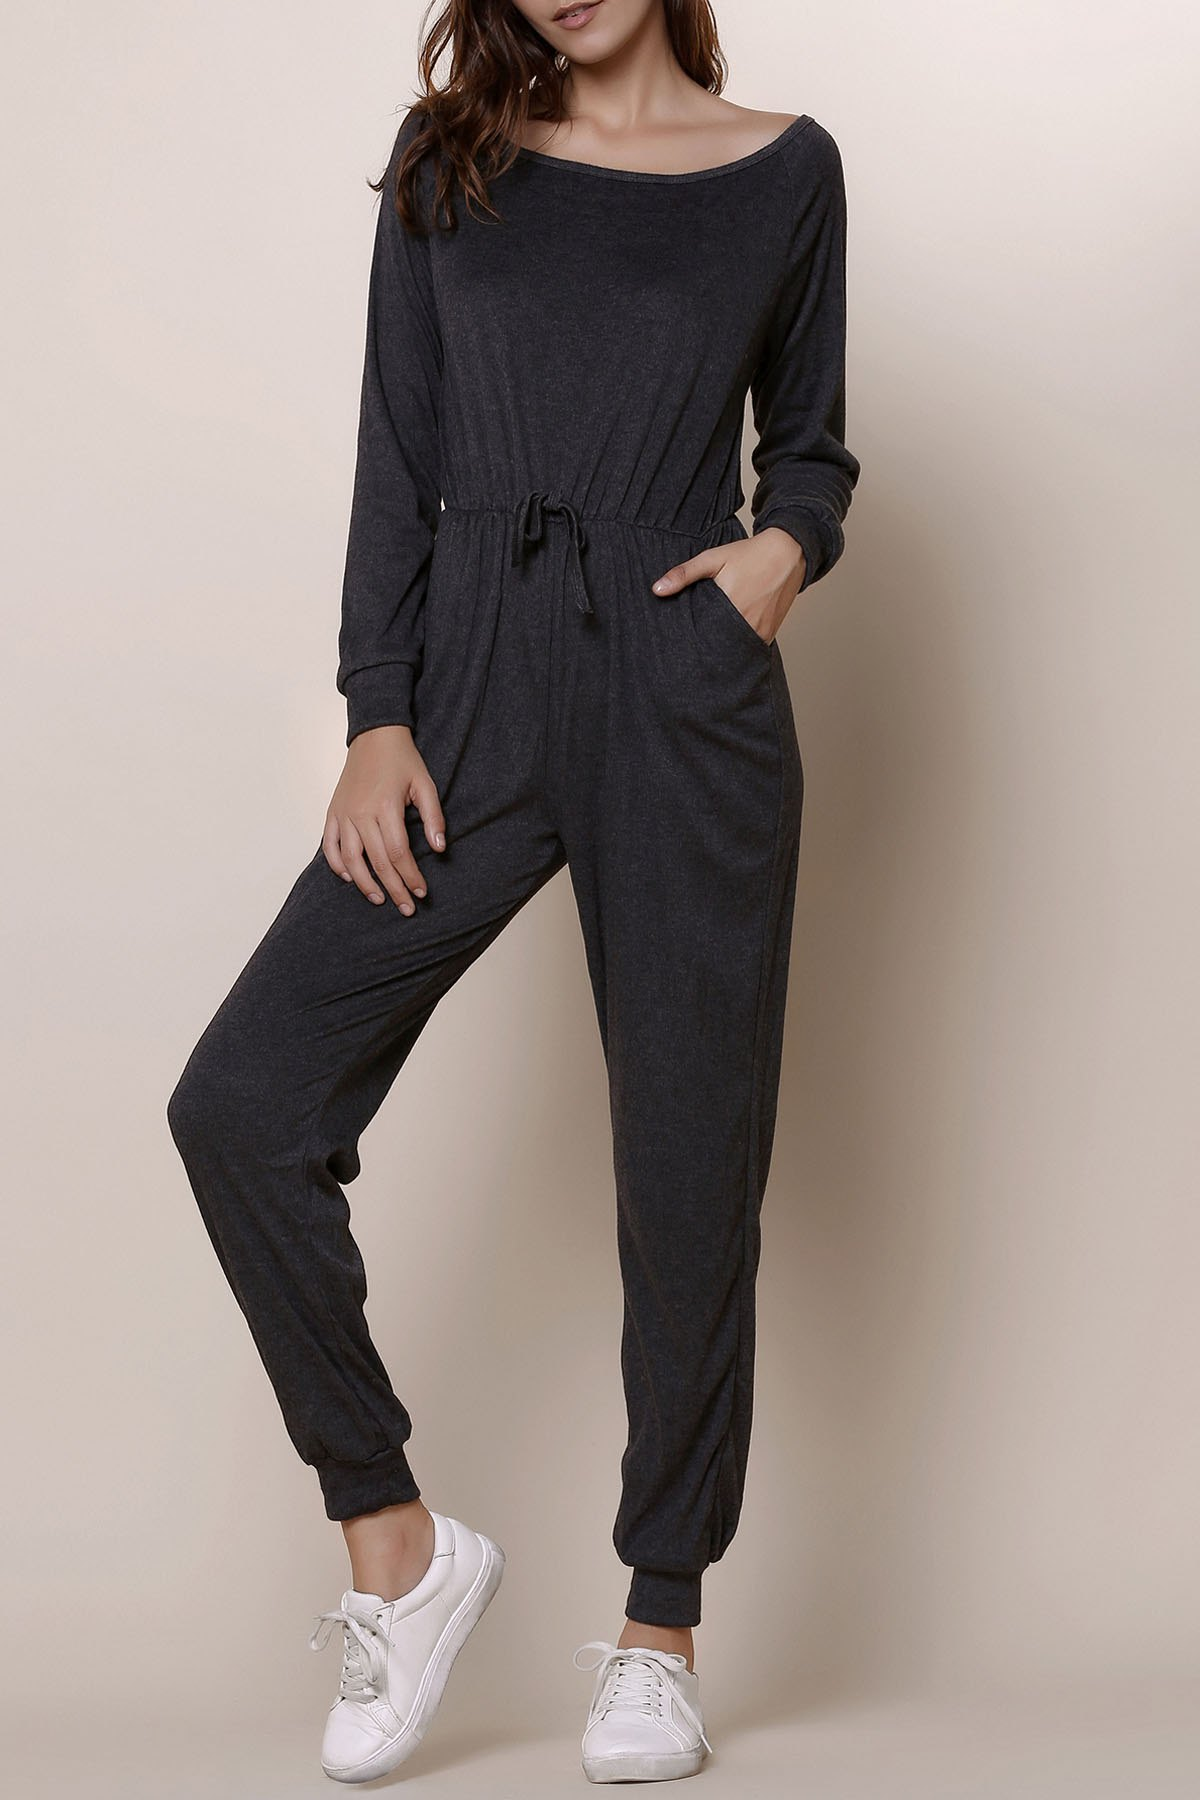 Casual Gray Skew Collar Self-Tie Long Sleeve Jumpsuit For Women - GRAY S